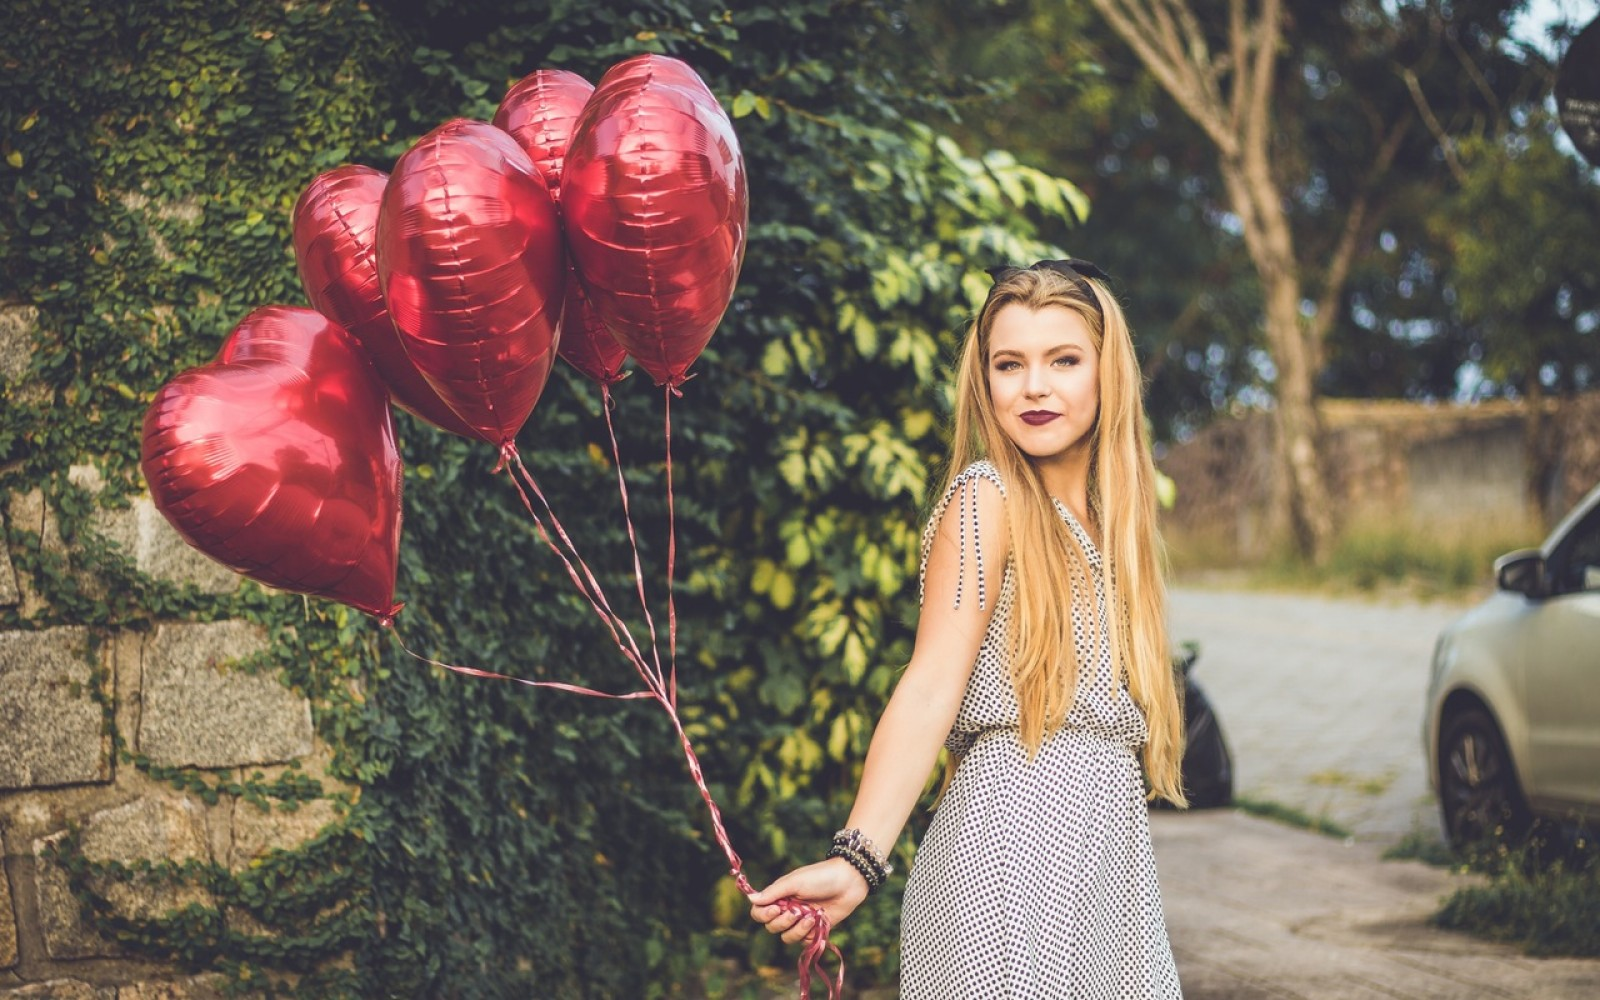 50 Romantic Ideas For Valentine's Day (Or Any Day You Want To Spoil Your Sweetheart)